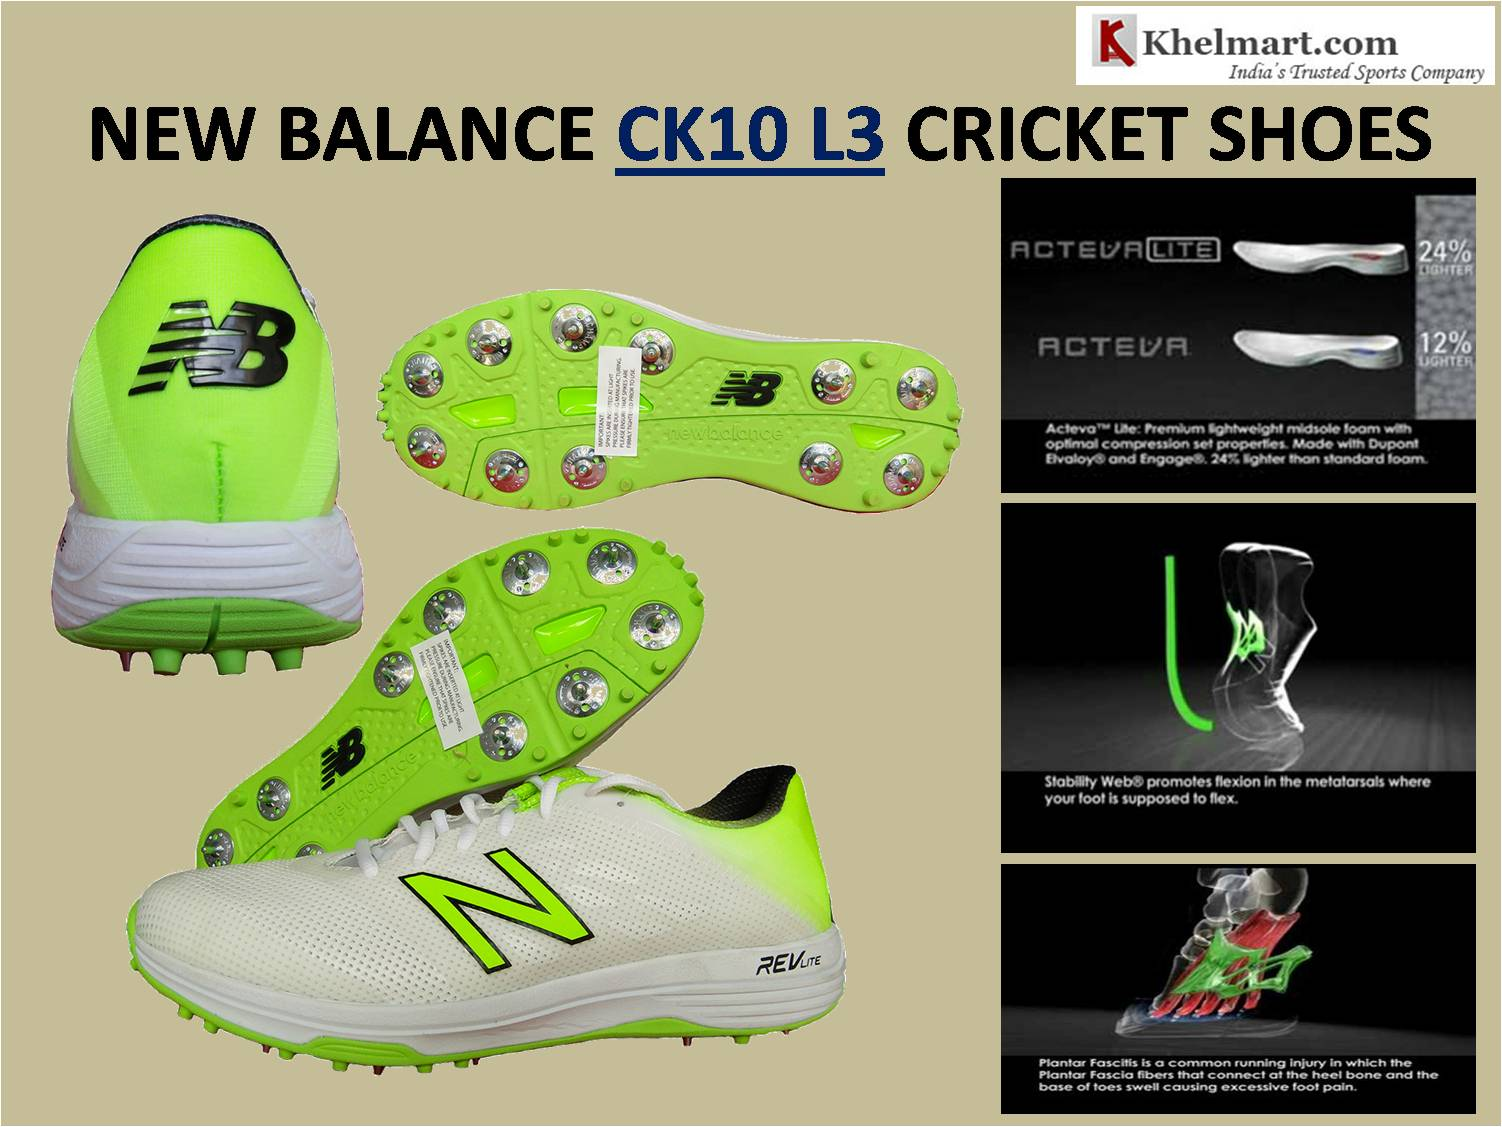 NEW BALANCE CK10 L3 CRICKET SHOES